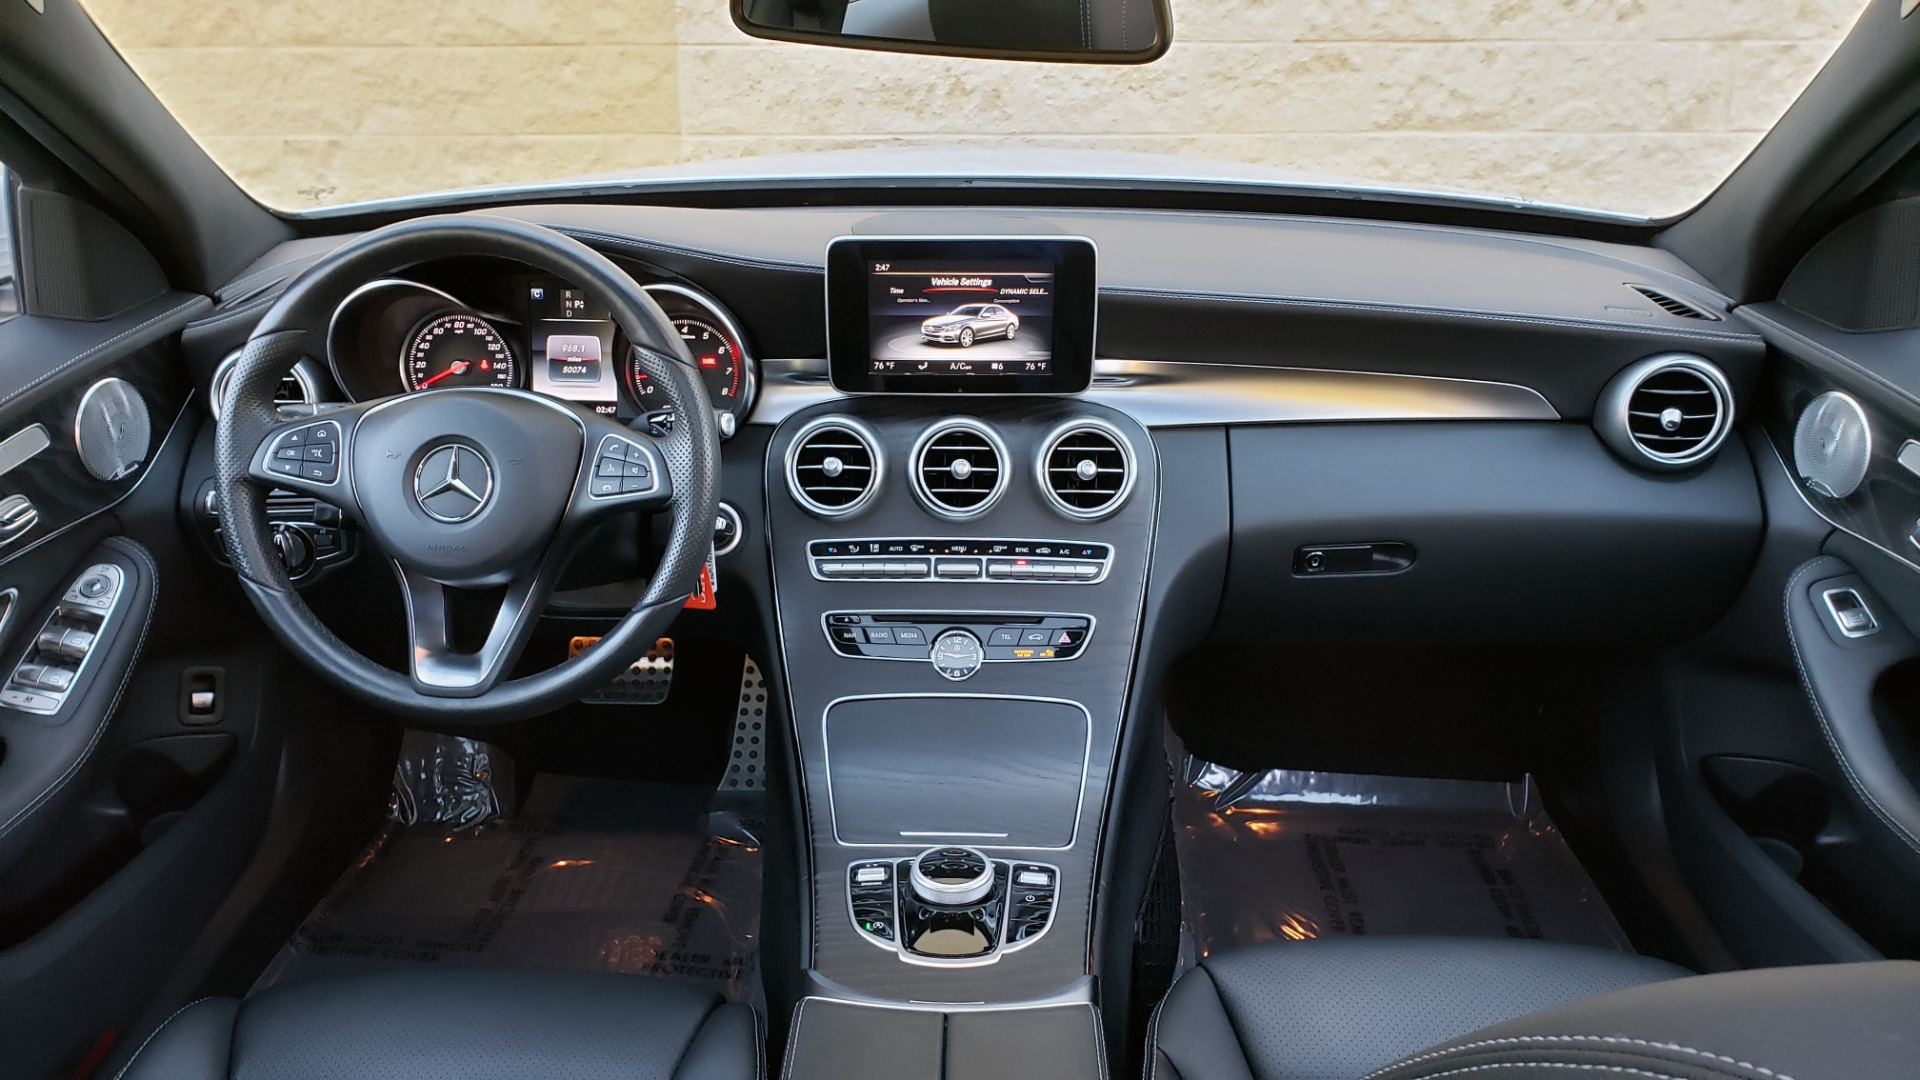 Used 2017 Mercedes-Benz C-CLASS C 300 SPORT / PREM PKG / PANO-ROOF / NAV / HTD STST / REARVIEW for sale Sold at Formula Imports in Charlotte NC 28227 70